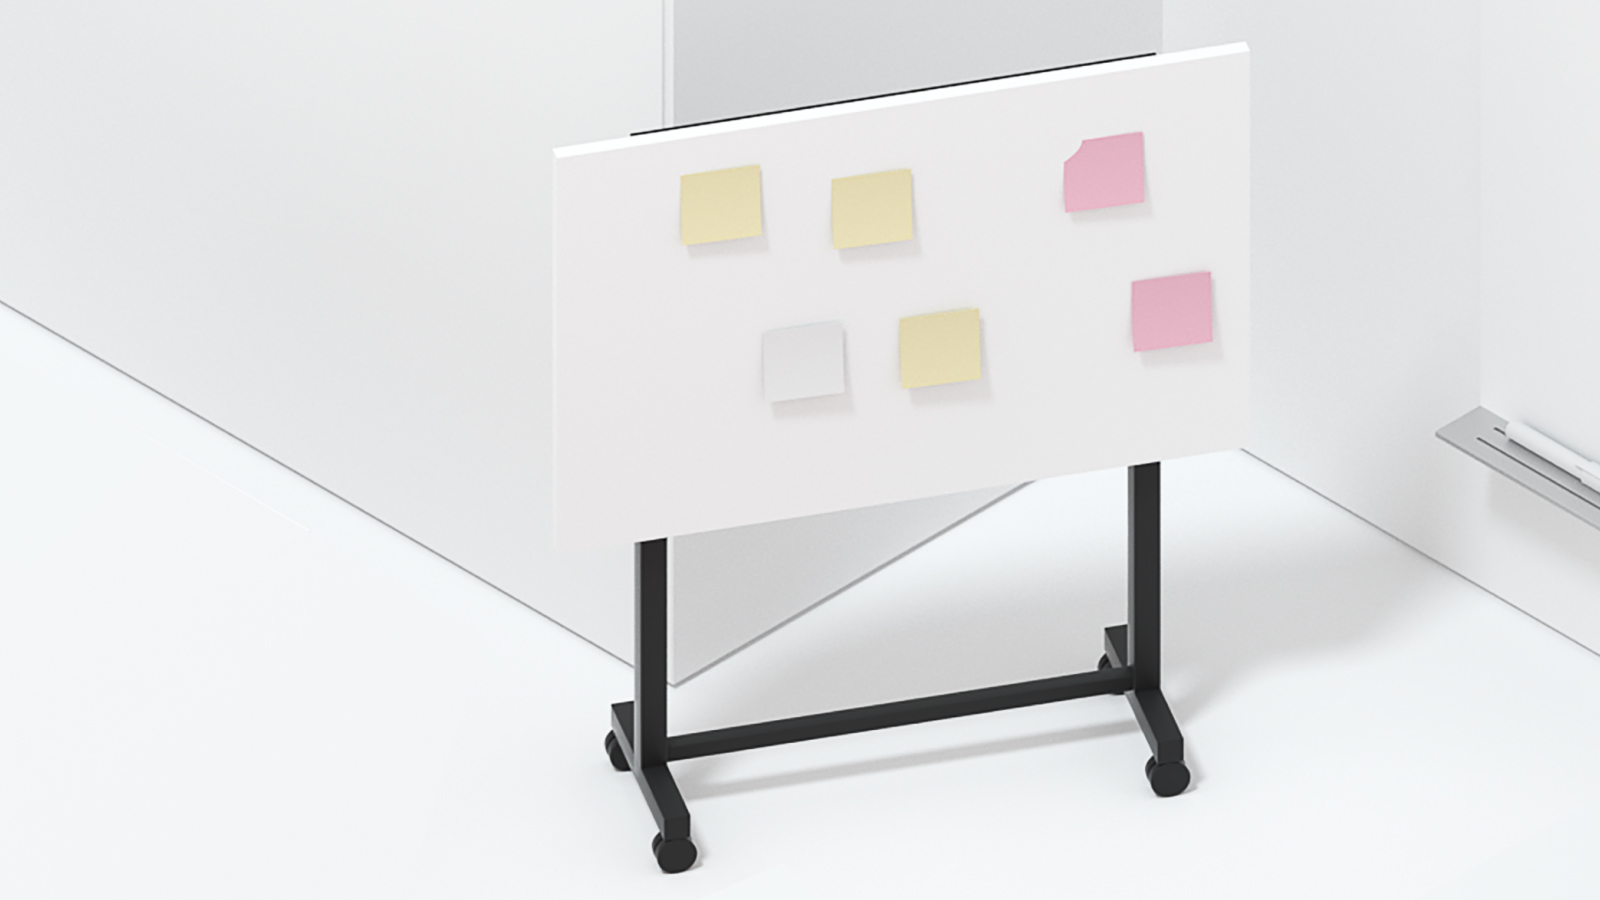 A 3d render of a white board with sticky notes in a room.